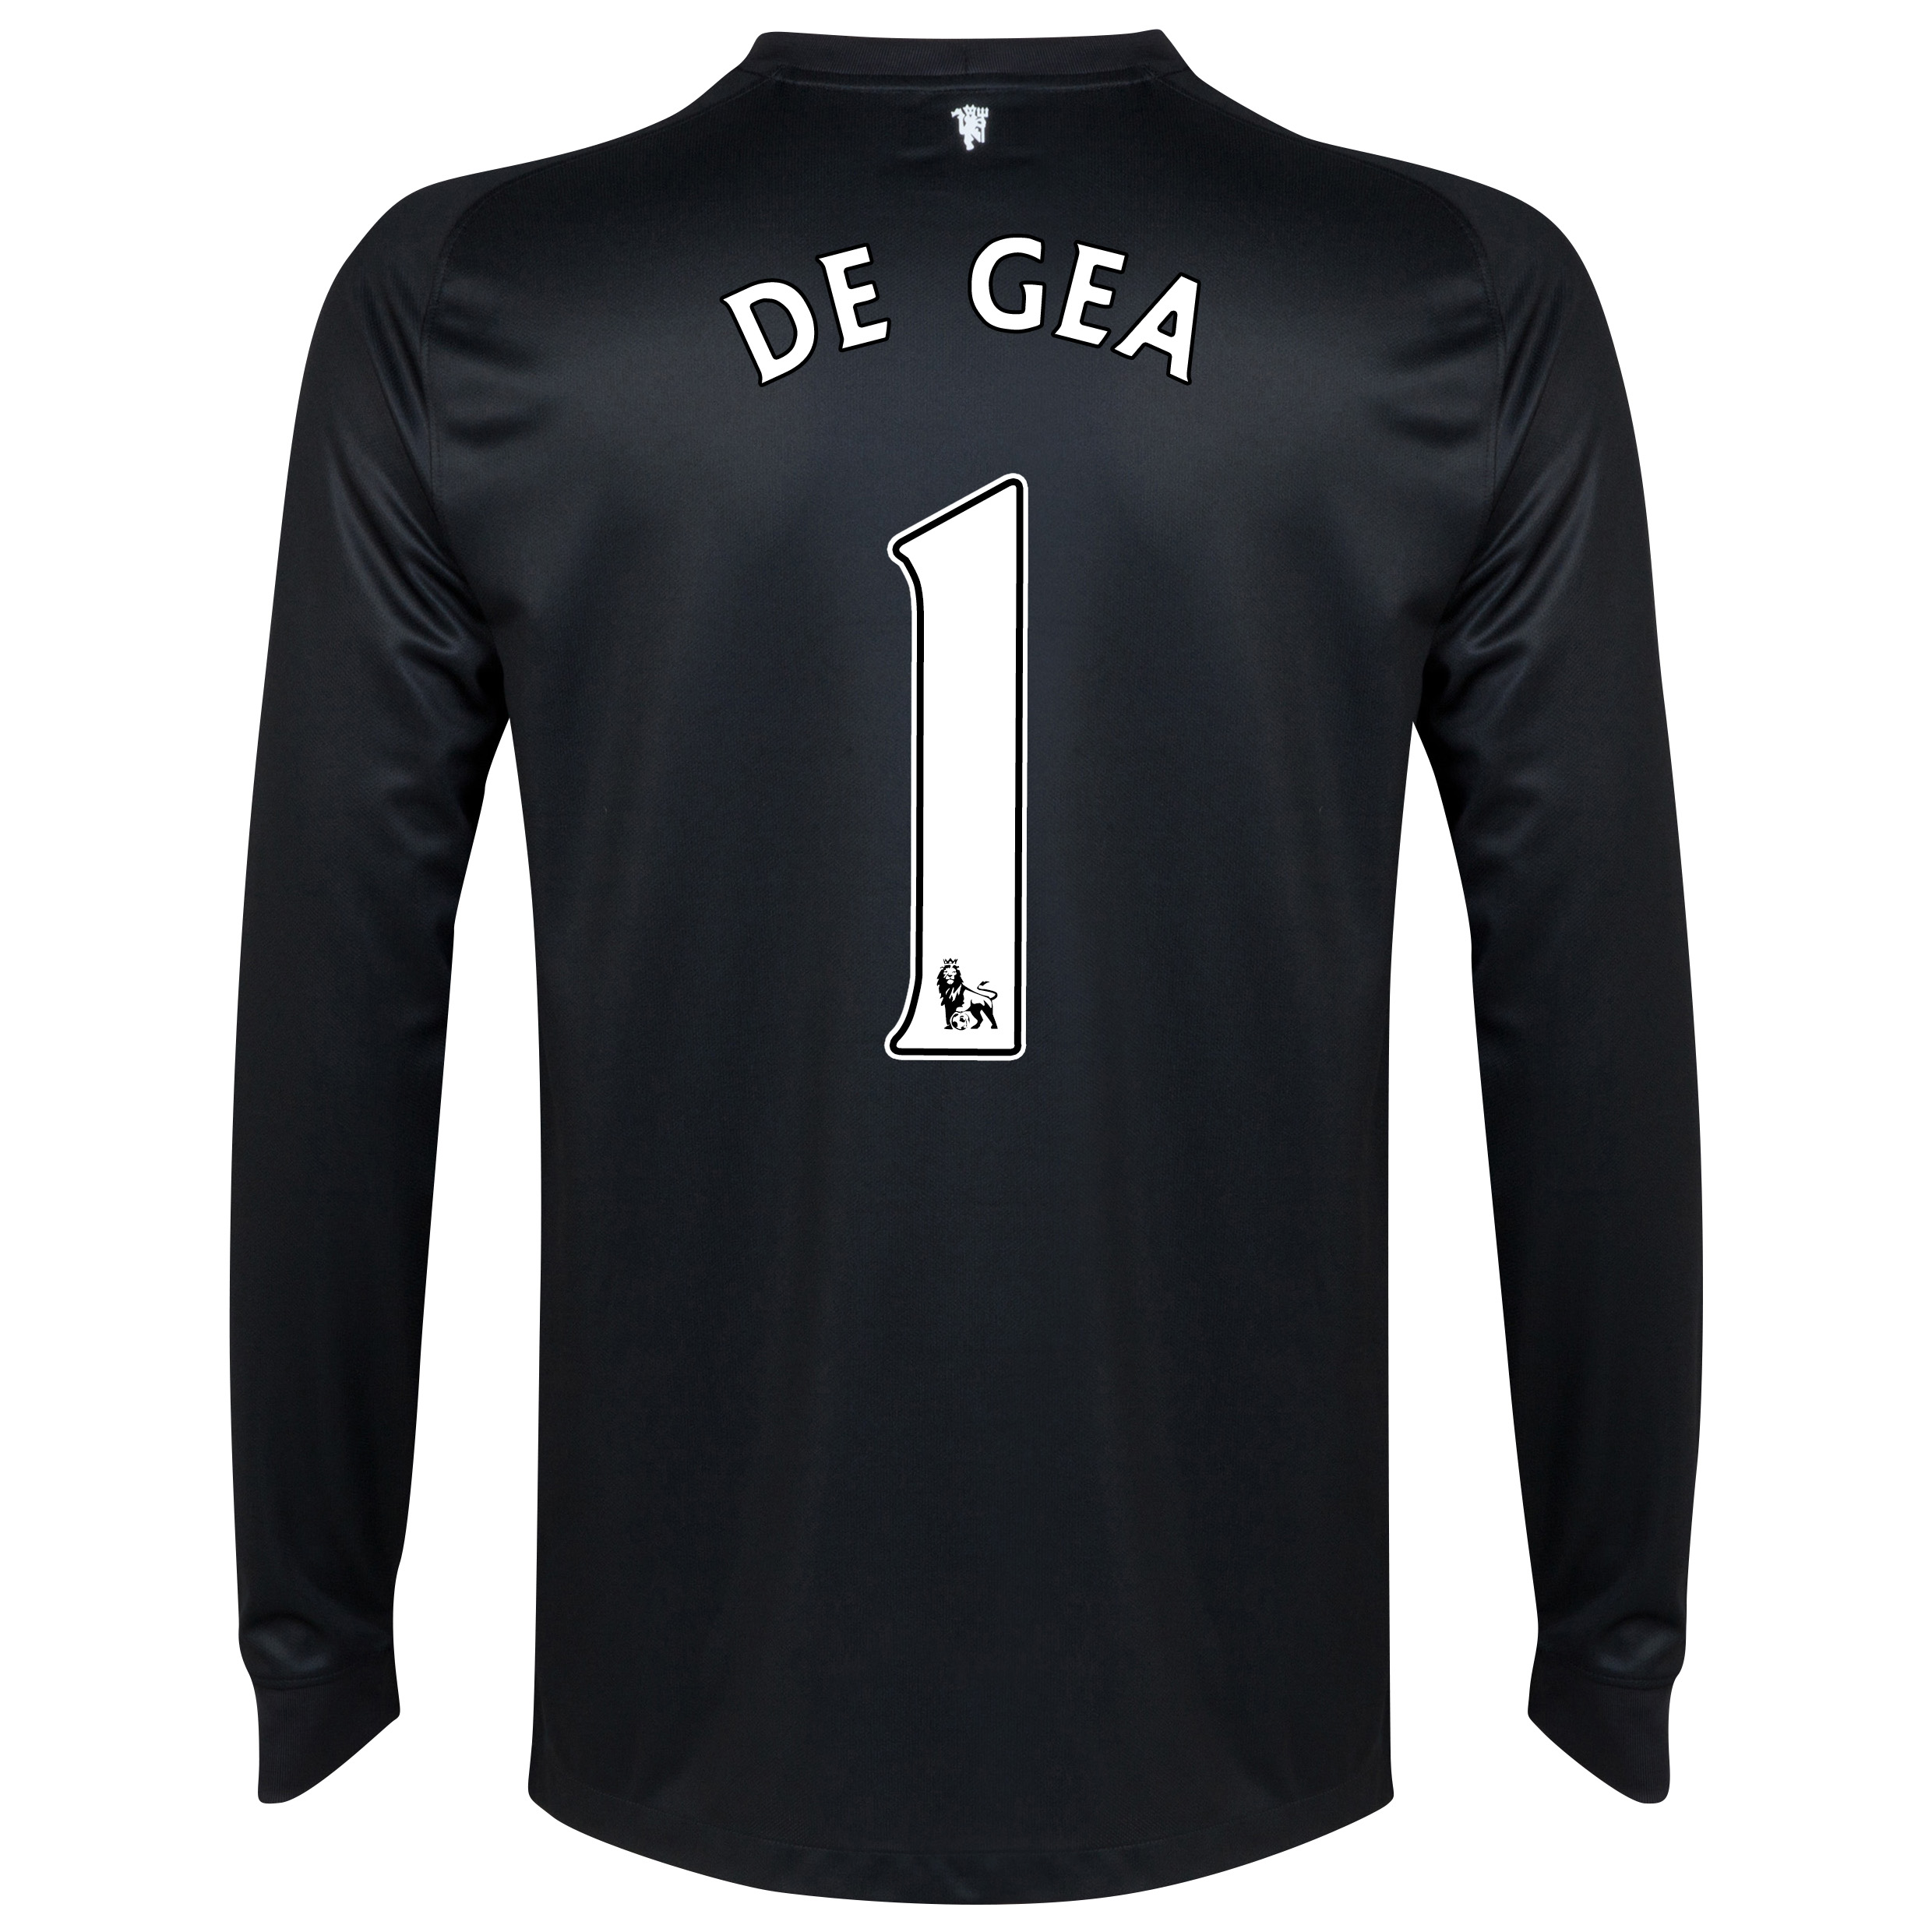 Manchester United Change Goalkeeper Shirt 2014/15 with De Gea 1 printing